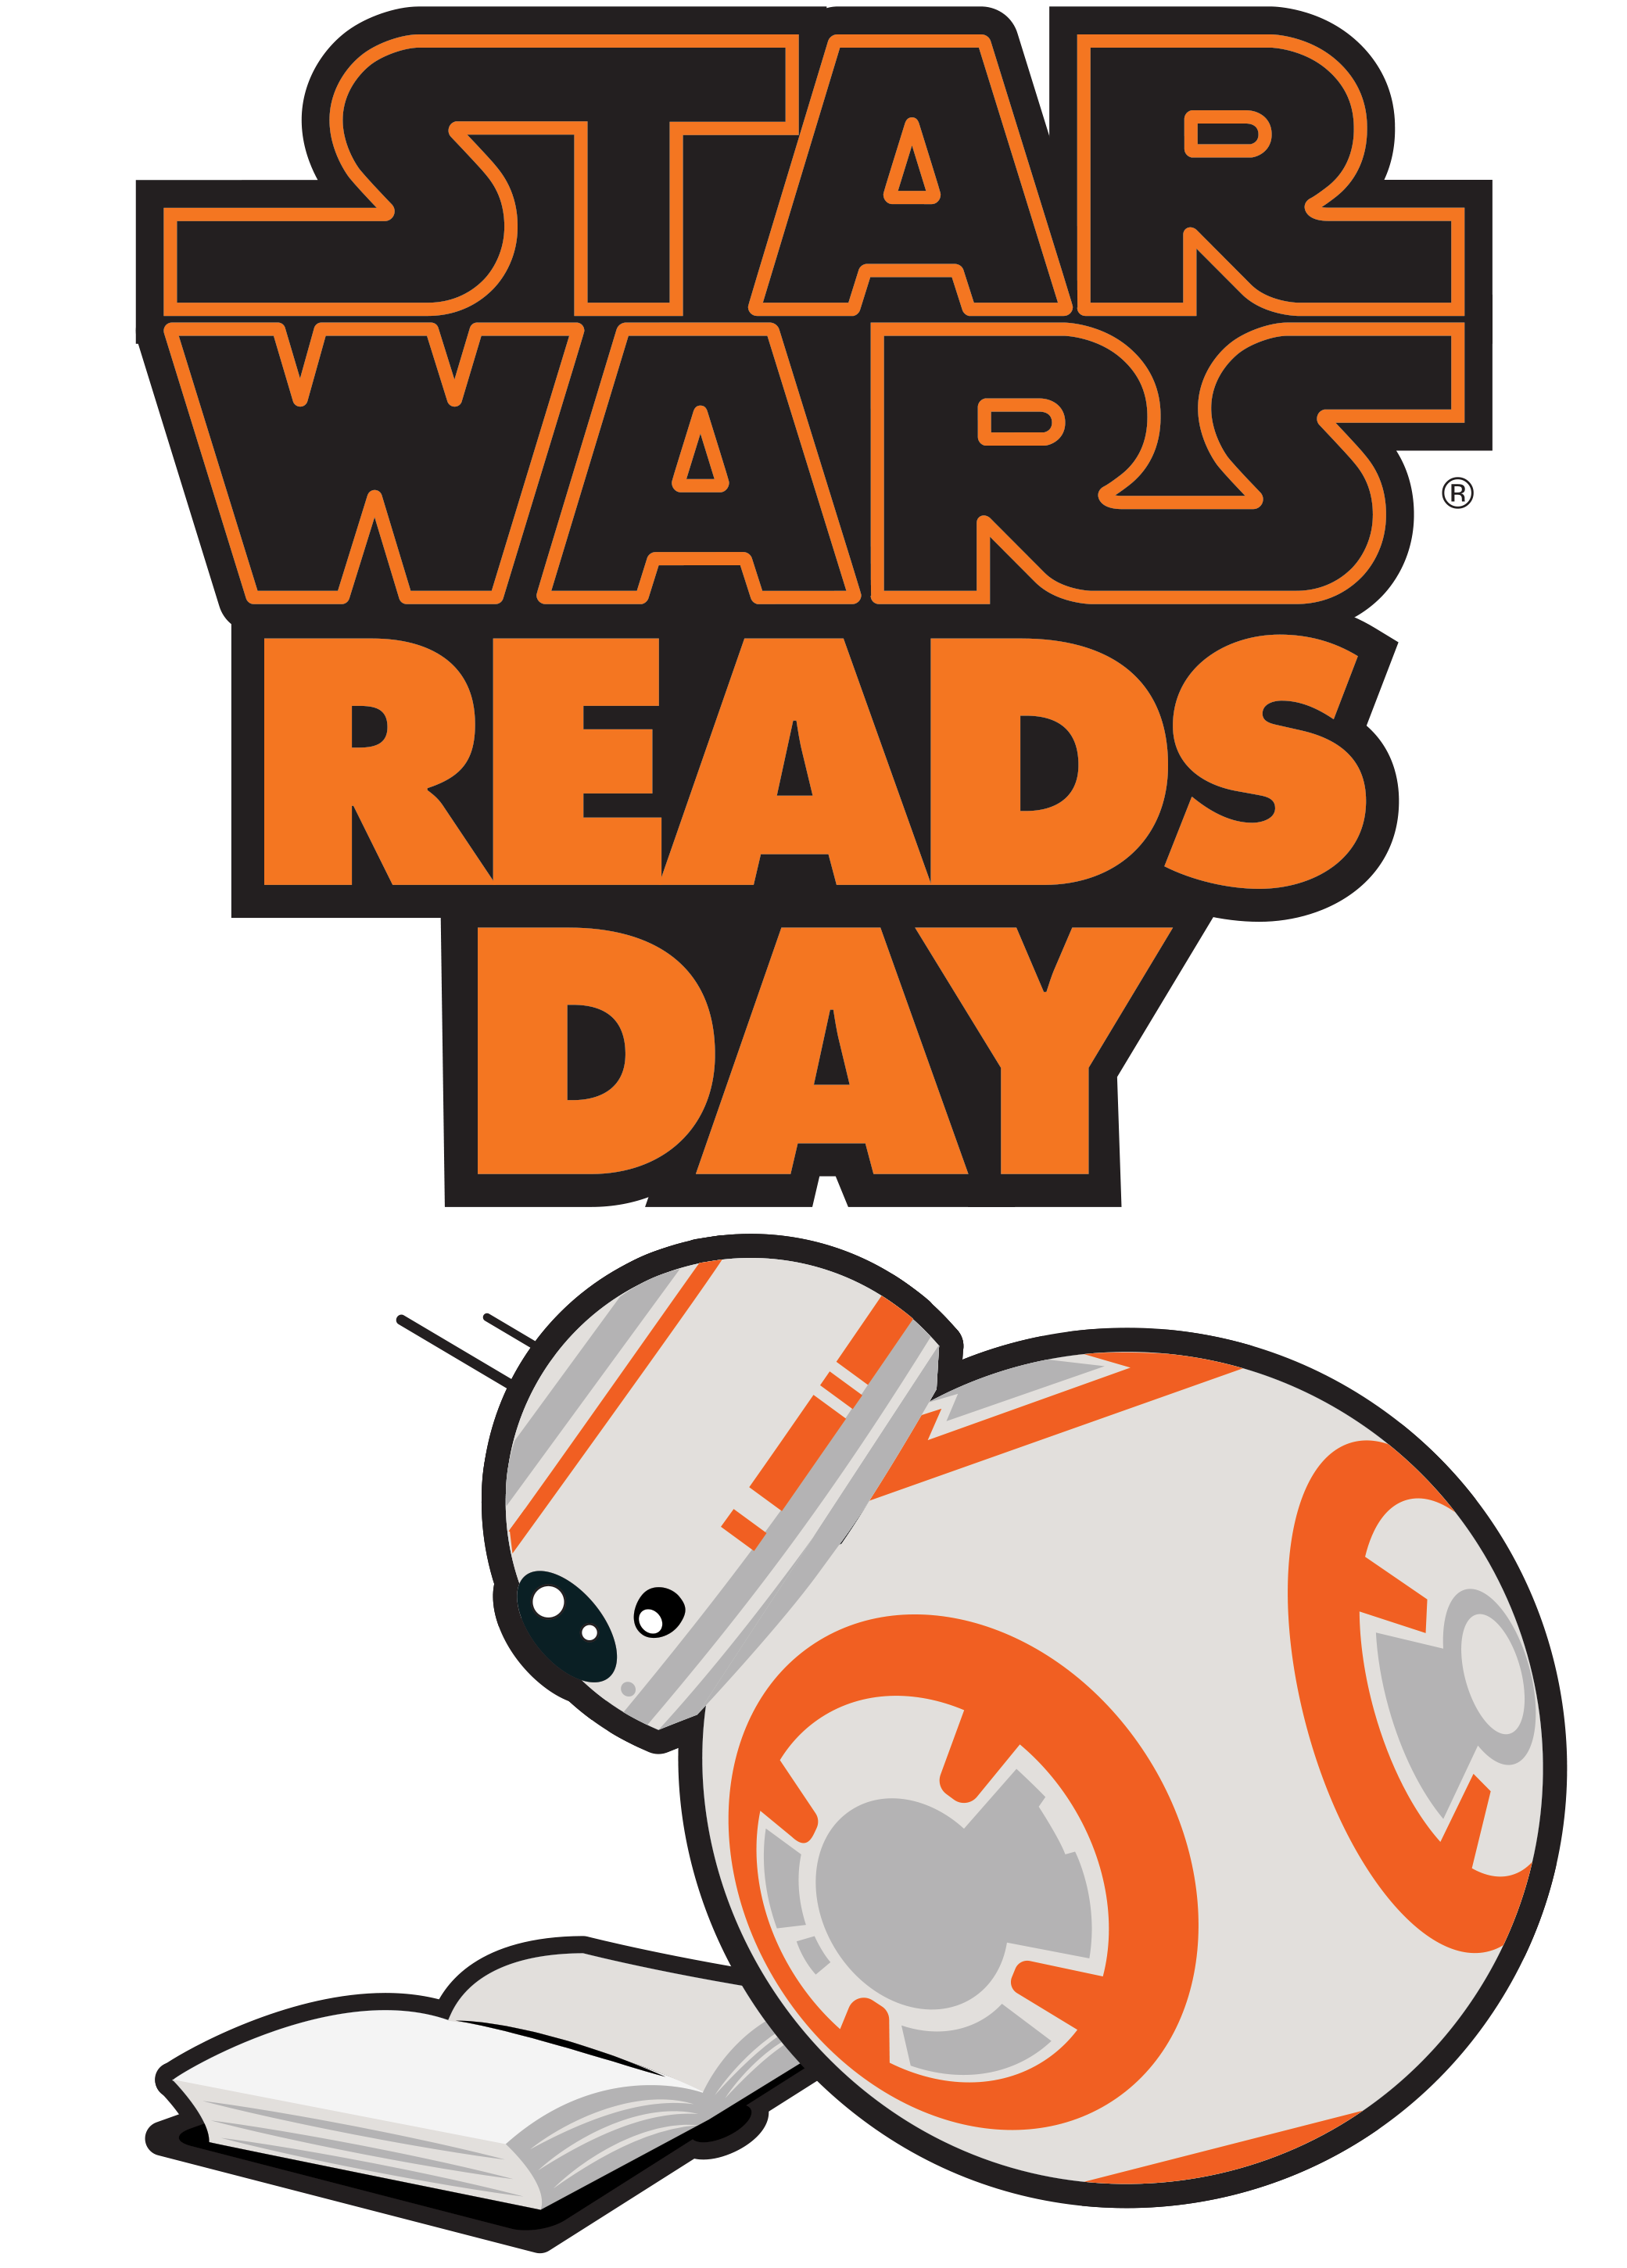 Star wars day clipart clipart free library Read more you must – join Star Wars Reads Day on October 10 | theluvvie clipart free library